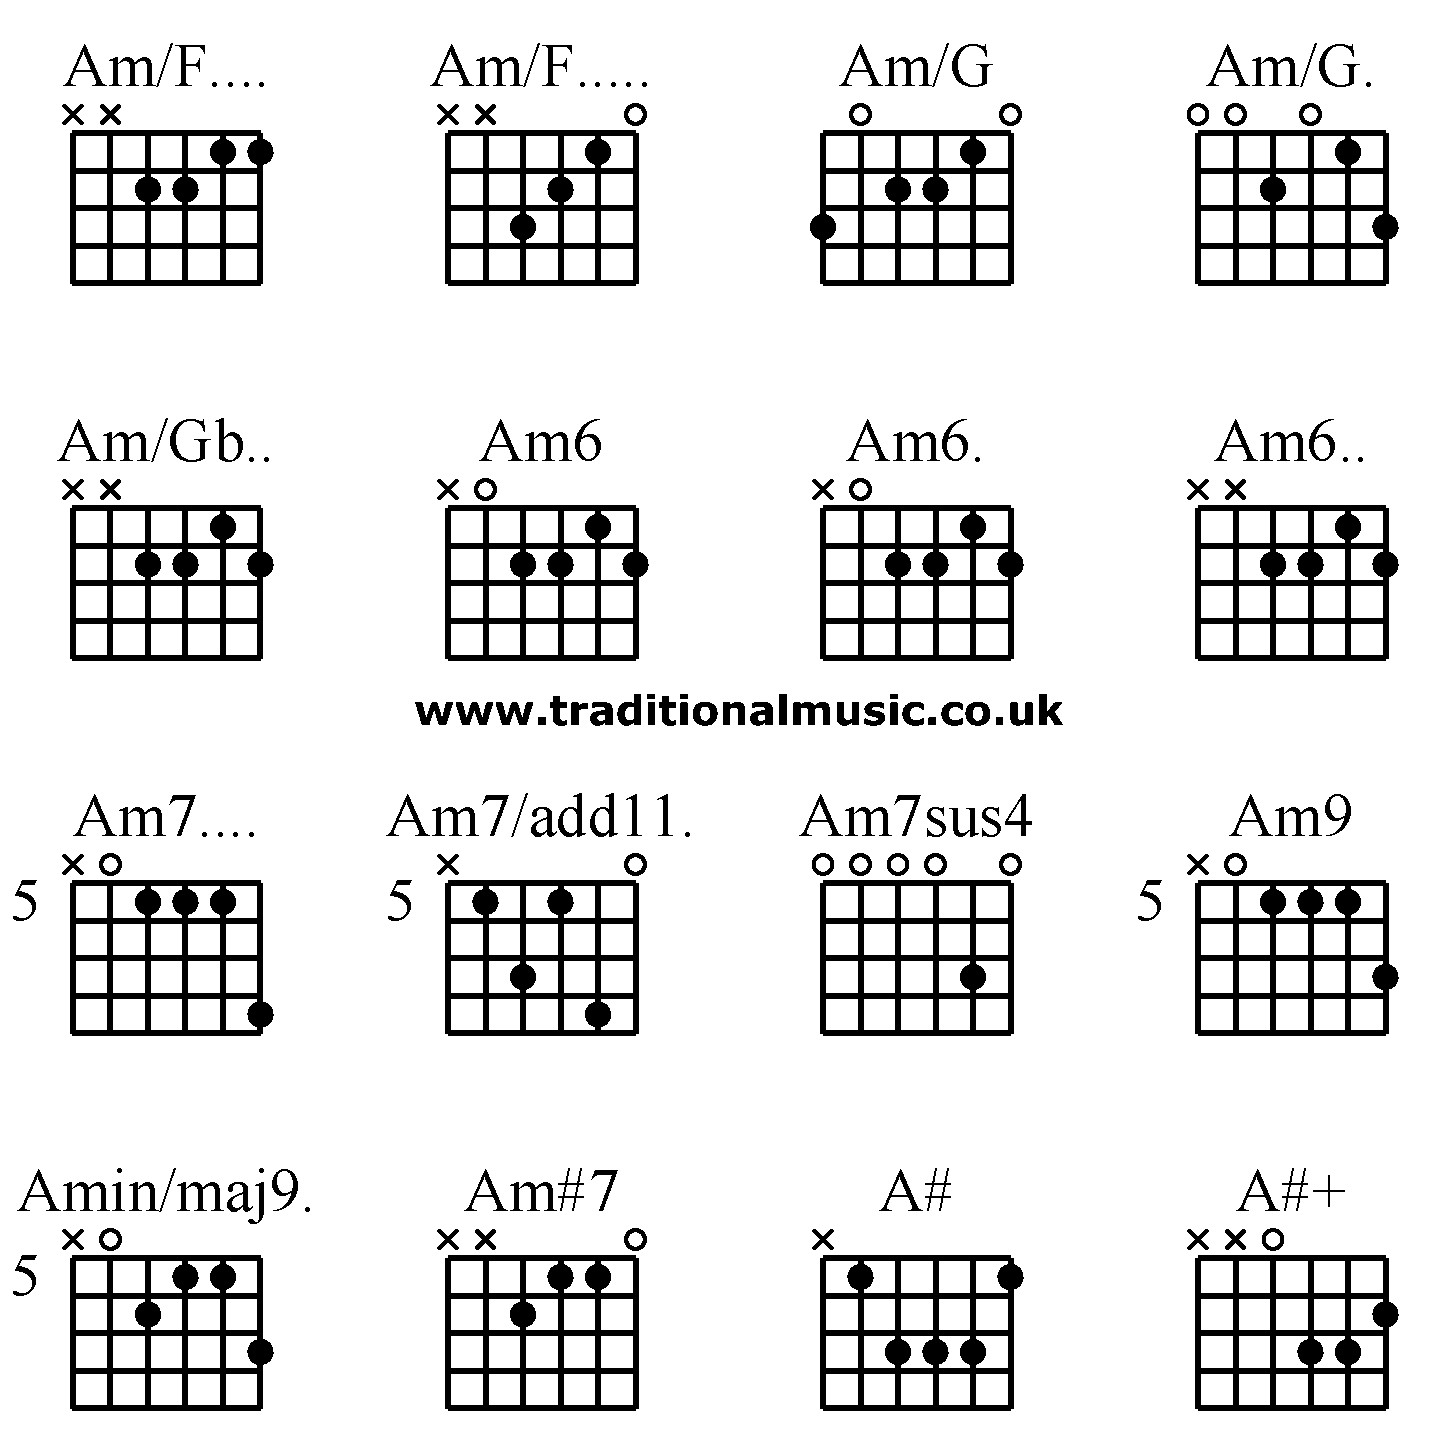 guitar chords advanced  f  am  f  am  g am  g  am  gb  am6